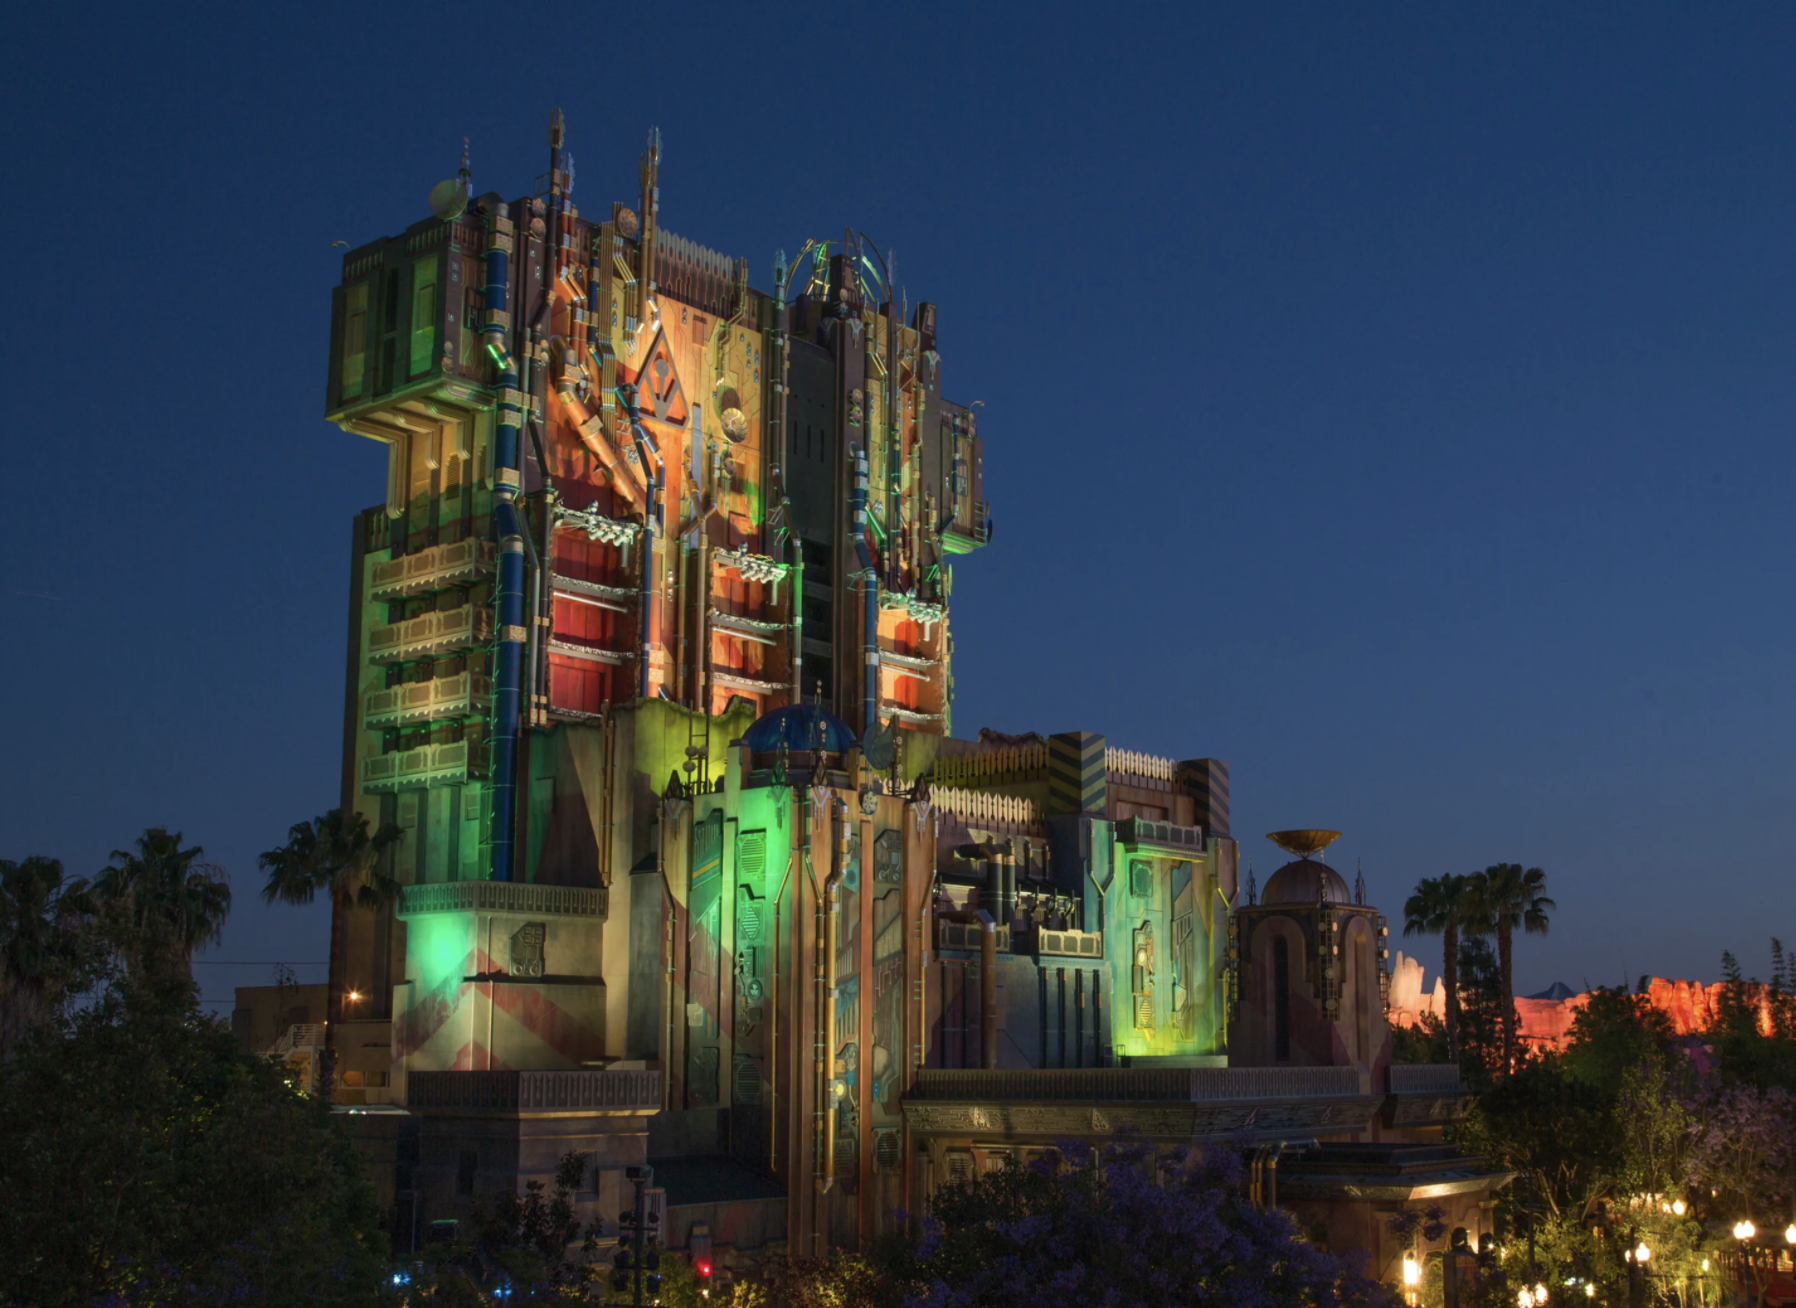 The Guardians of the Galaxy structure lit up at night